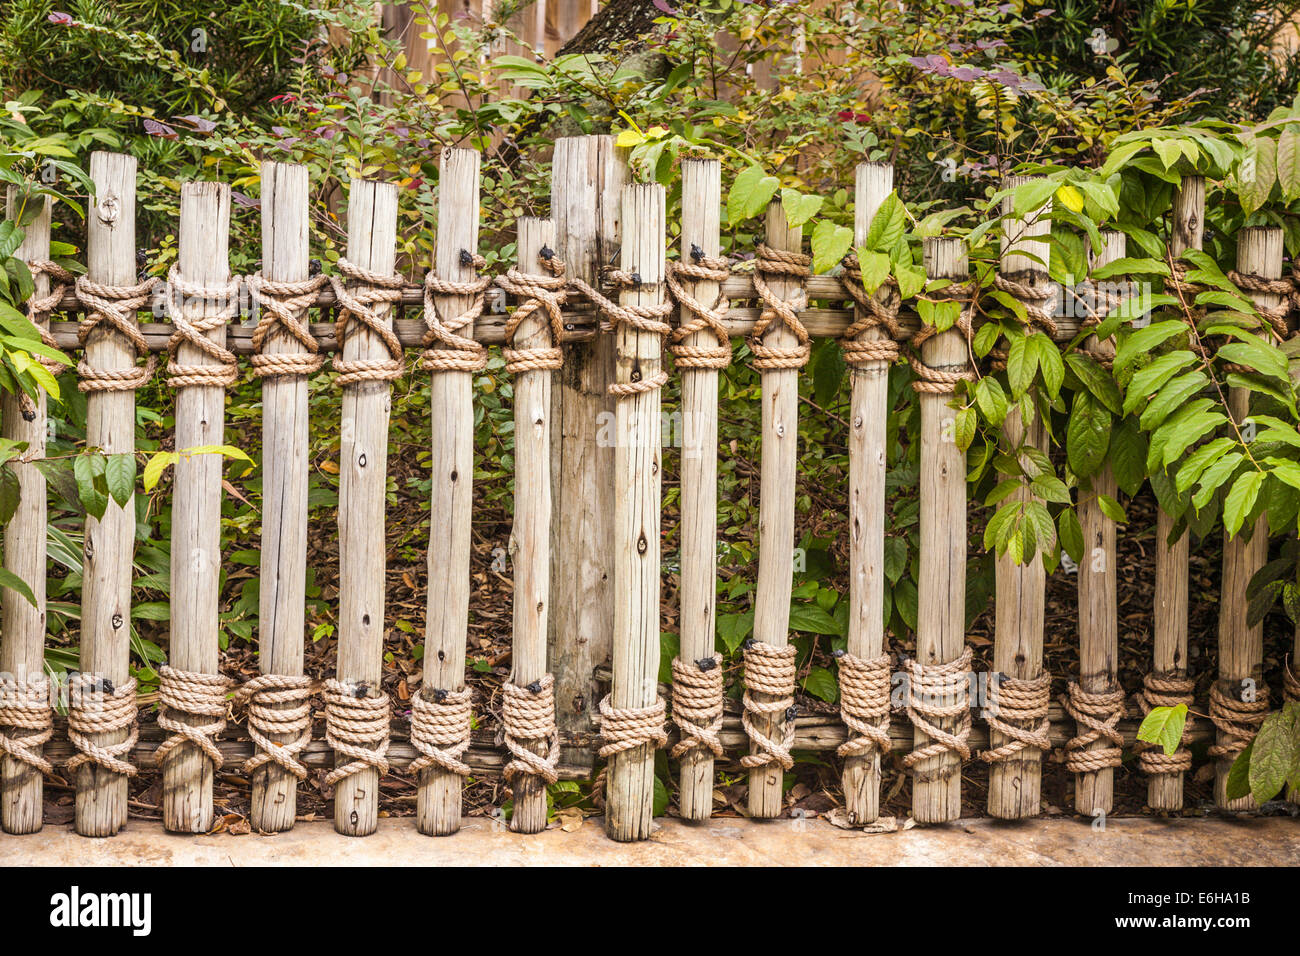 Wooden fence tied with rope at Busch Gardens in Tampa, Florida, USA ...